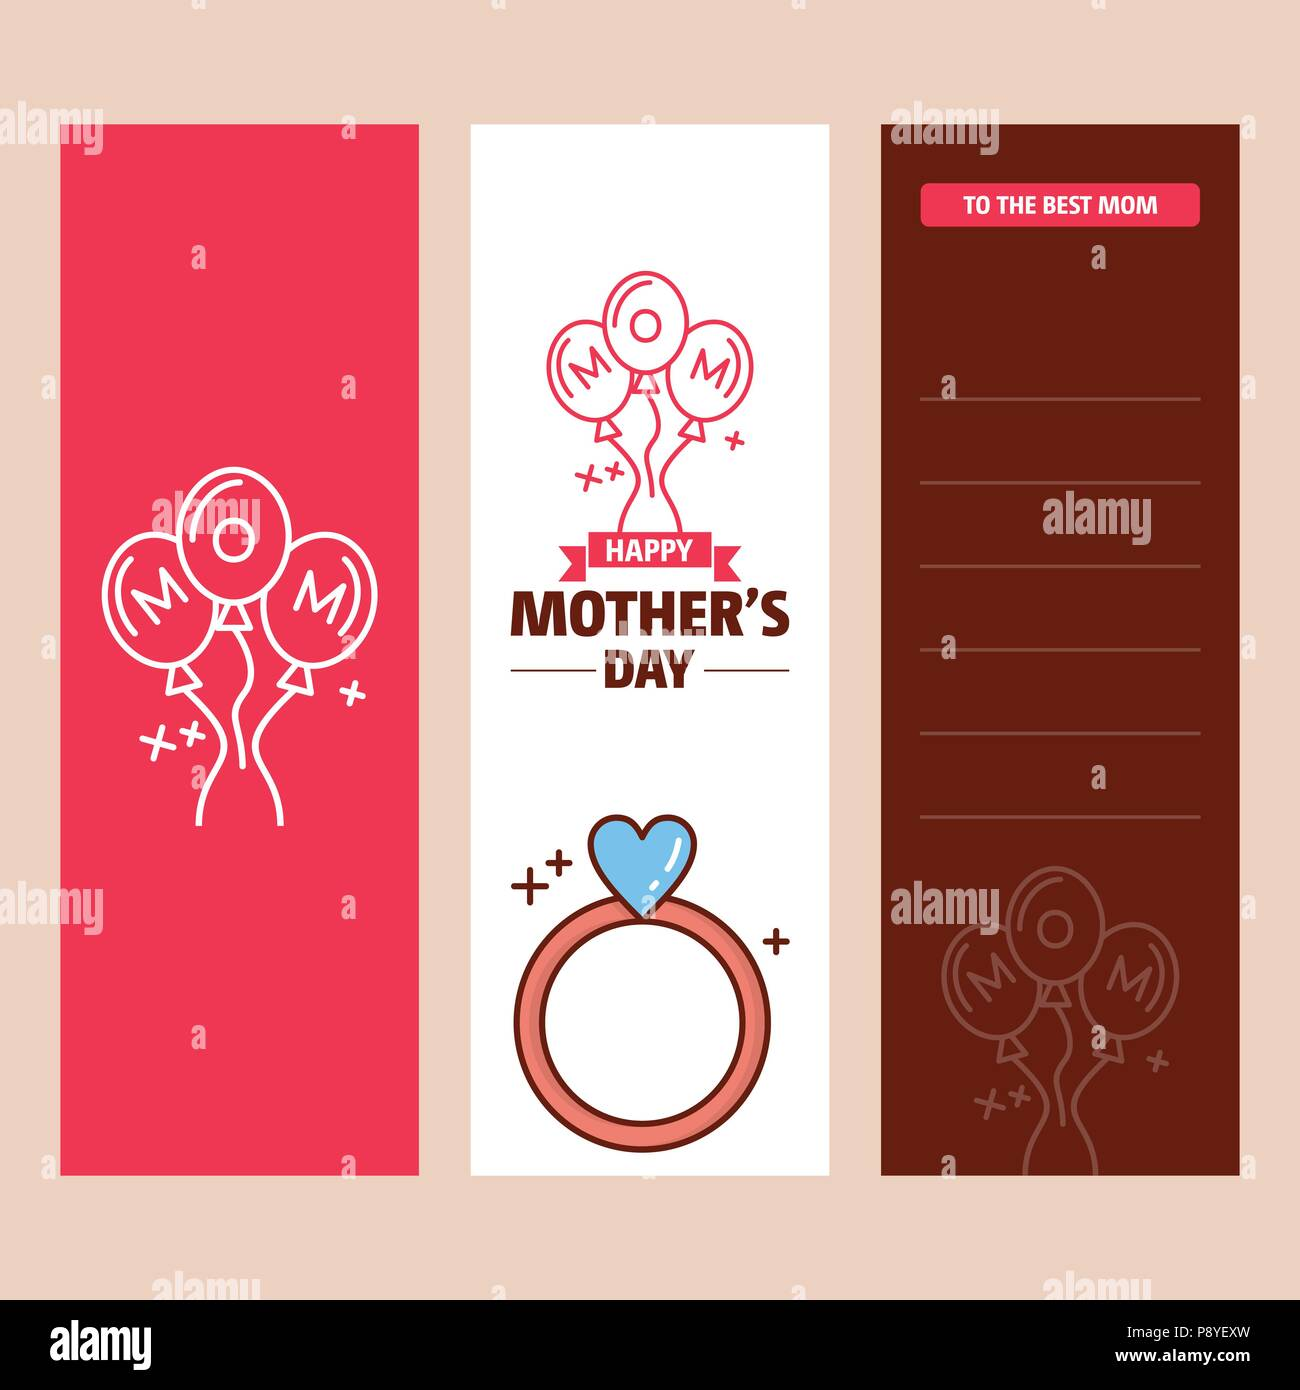 mother s day card with ring logo and pink theme vector for web design and application interface also useful for infographics vector illustration stock vector image art alamy alamy